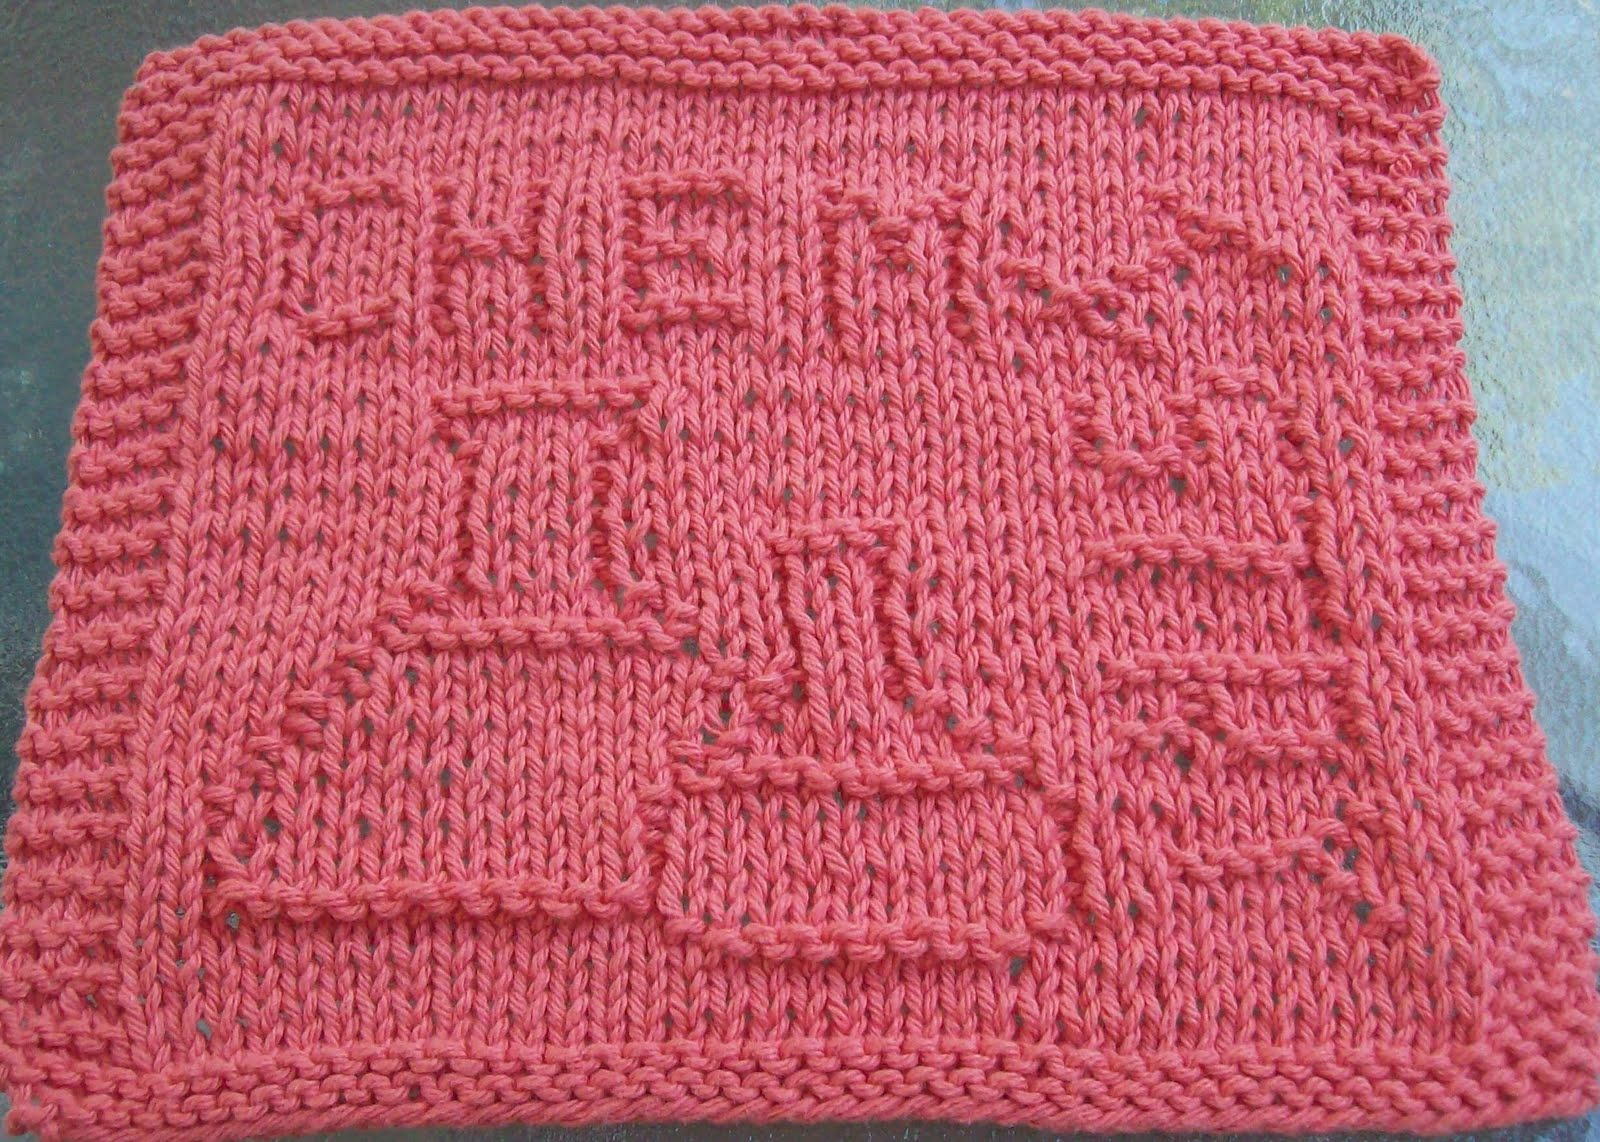 Knit Dishcloths Free Patterns : Knitted Dishcloth Patterns A Knitting Blog